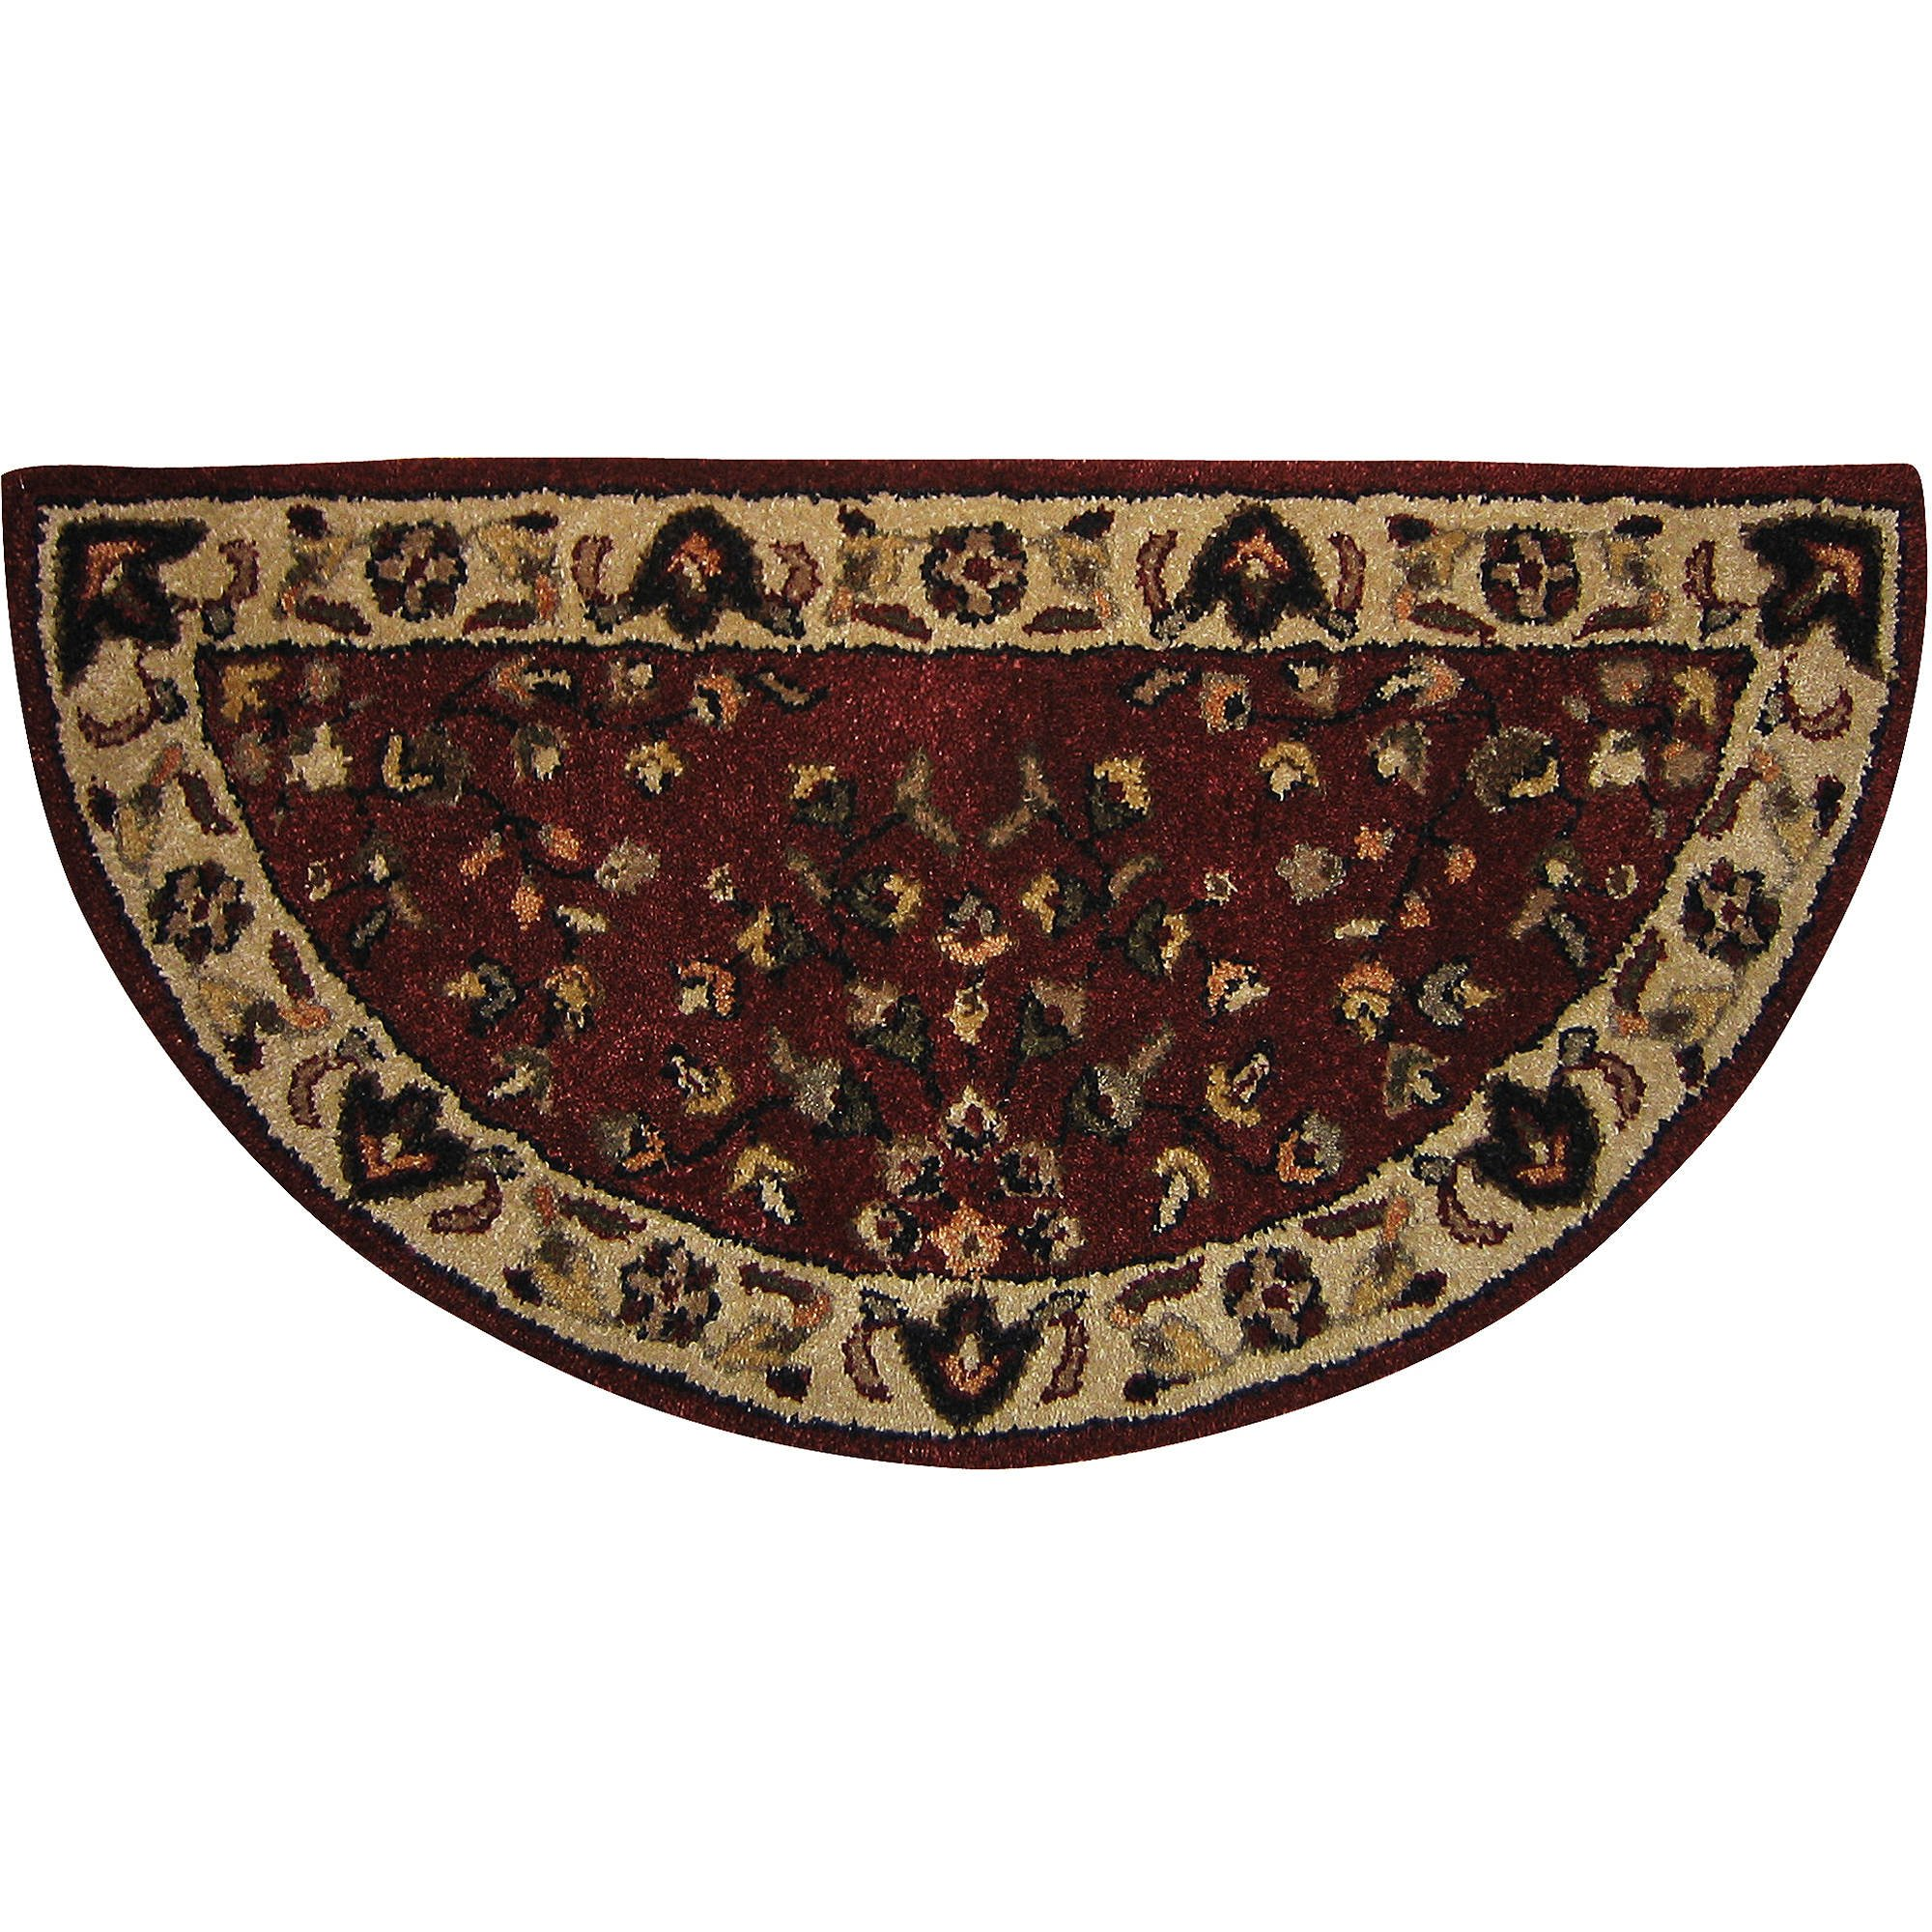 D.I.D. 1 Piece 44x22 Beige Red Floral Half Moon Hearth Rug, Classic Oriental Half Circle Shape Flooring Entrance Indoor Wood Burning Stove Mat Hand Tufted Rounded Edge, Wool